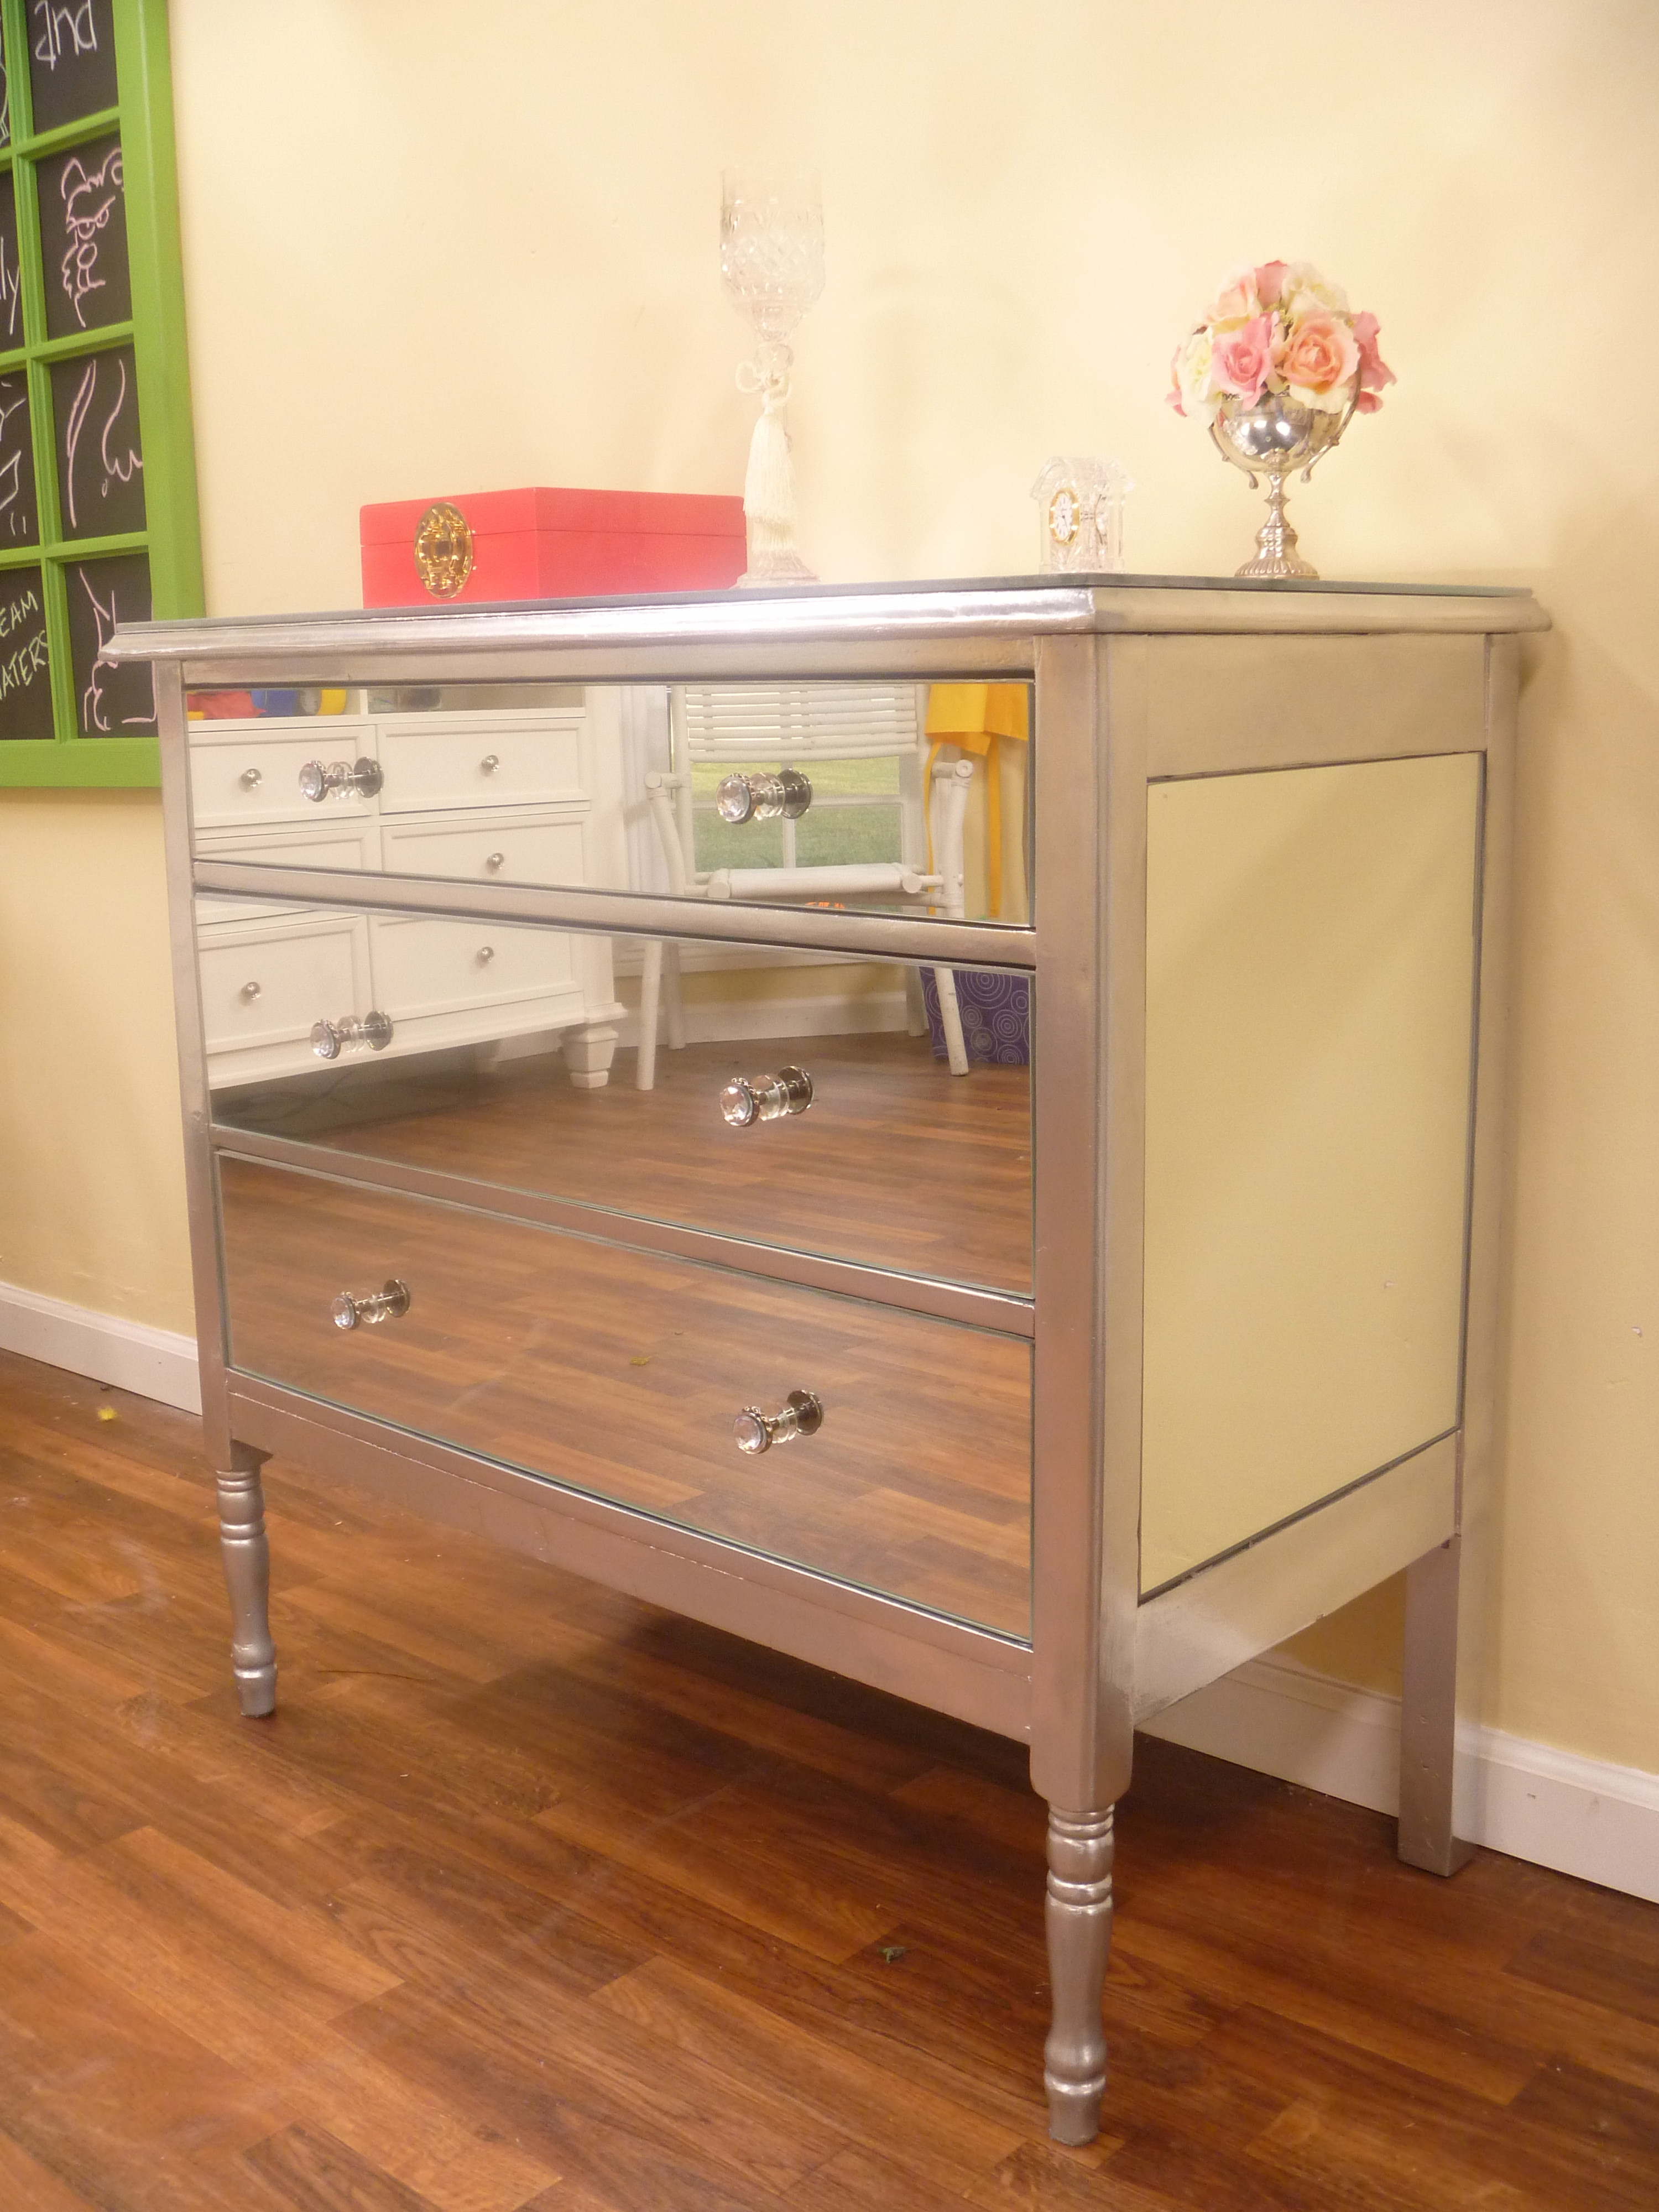 Best ideas about Paint Dresser DIY . Save or Pin DIY Mirrored Dresser Now.